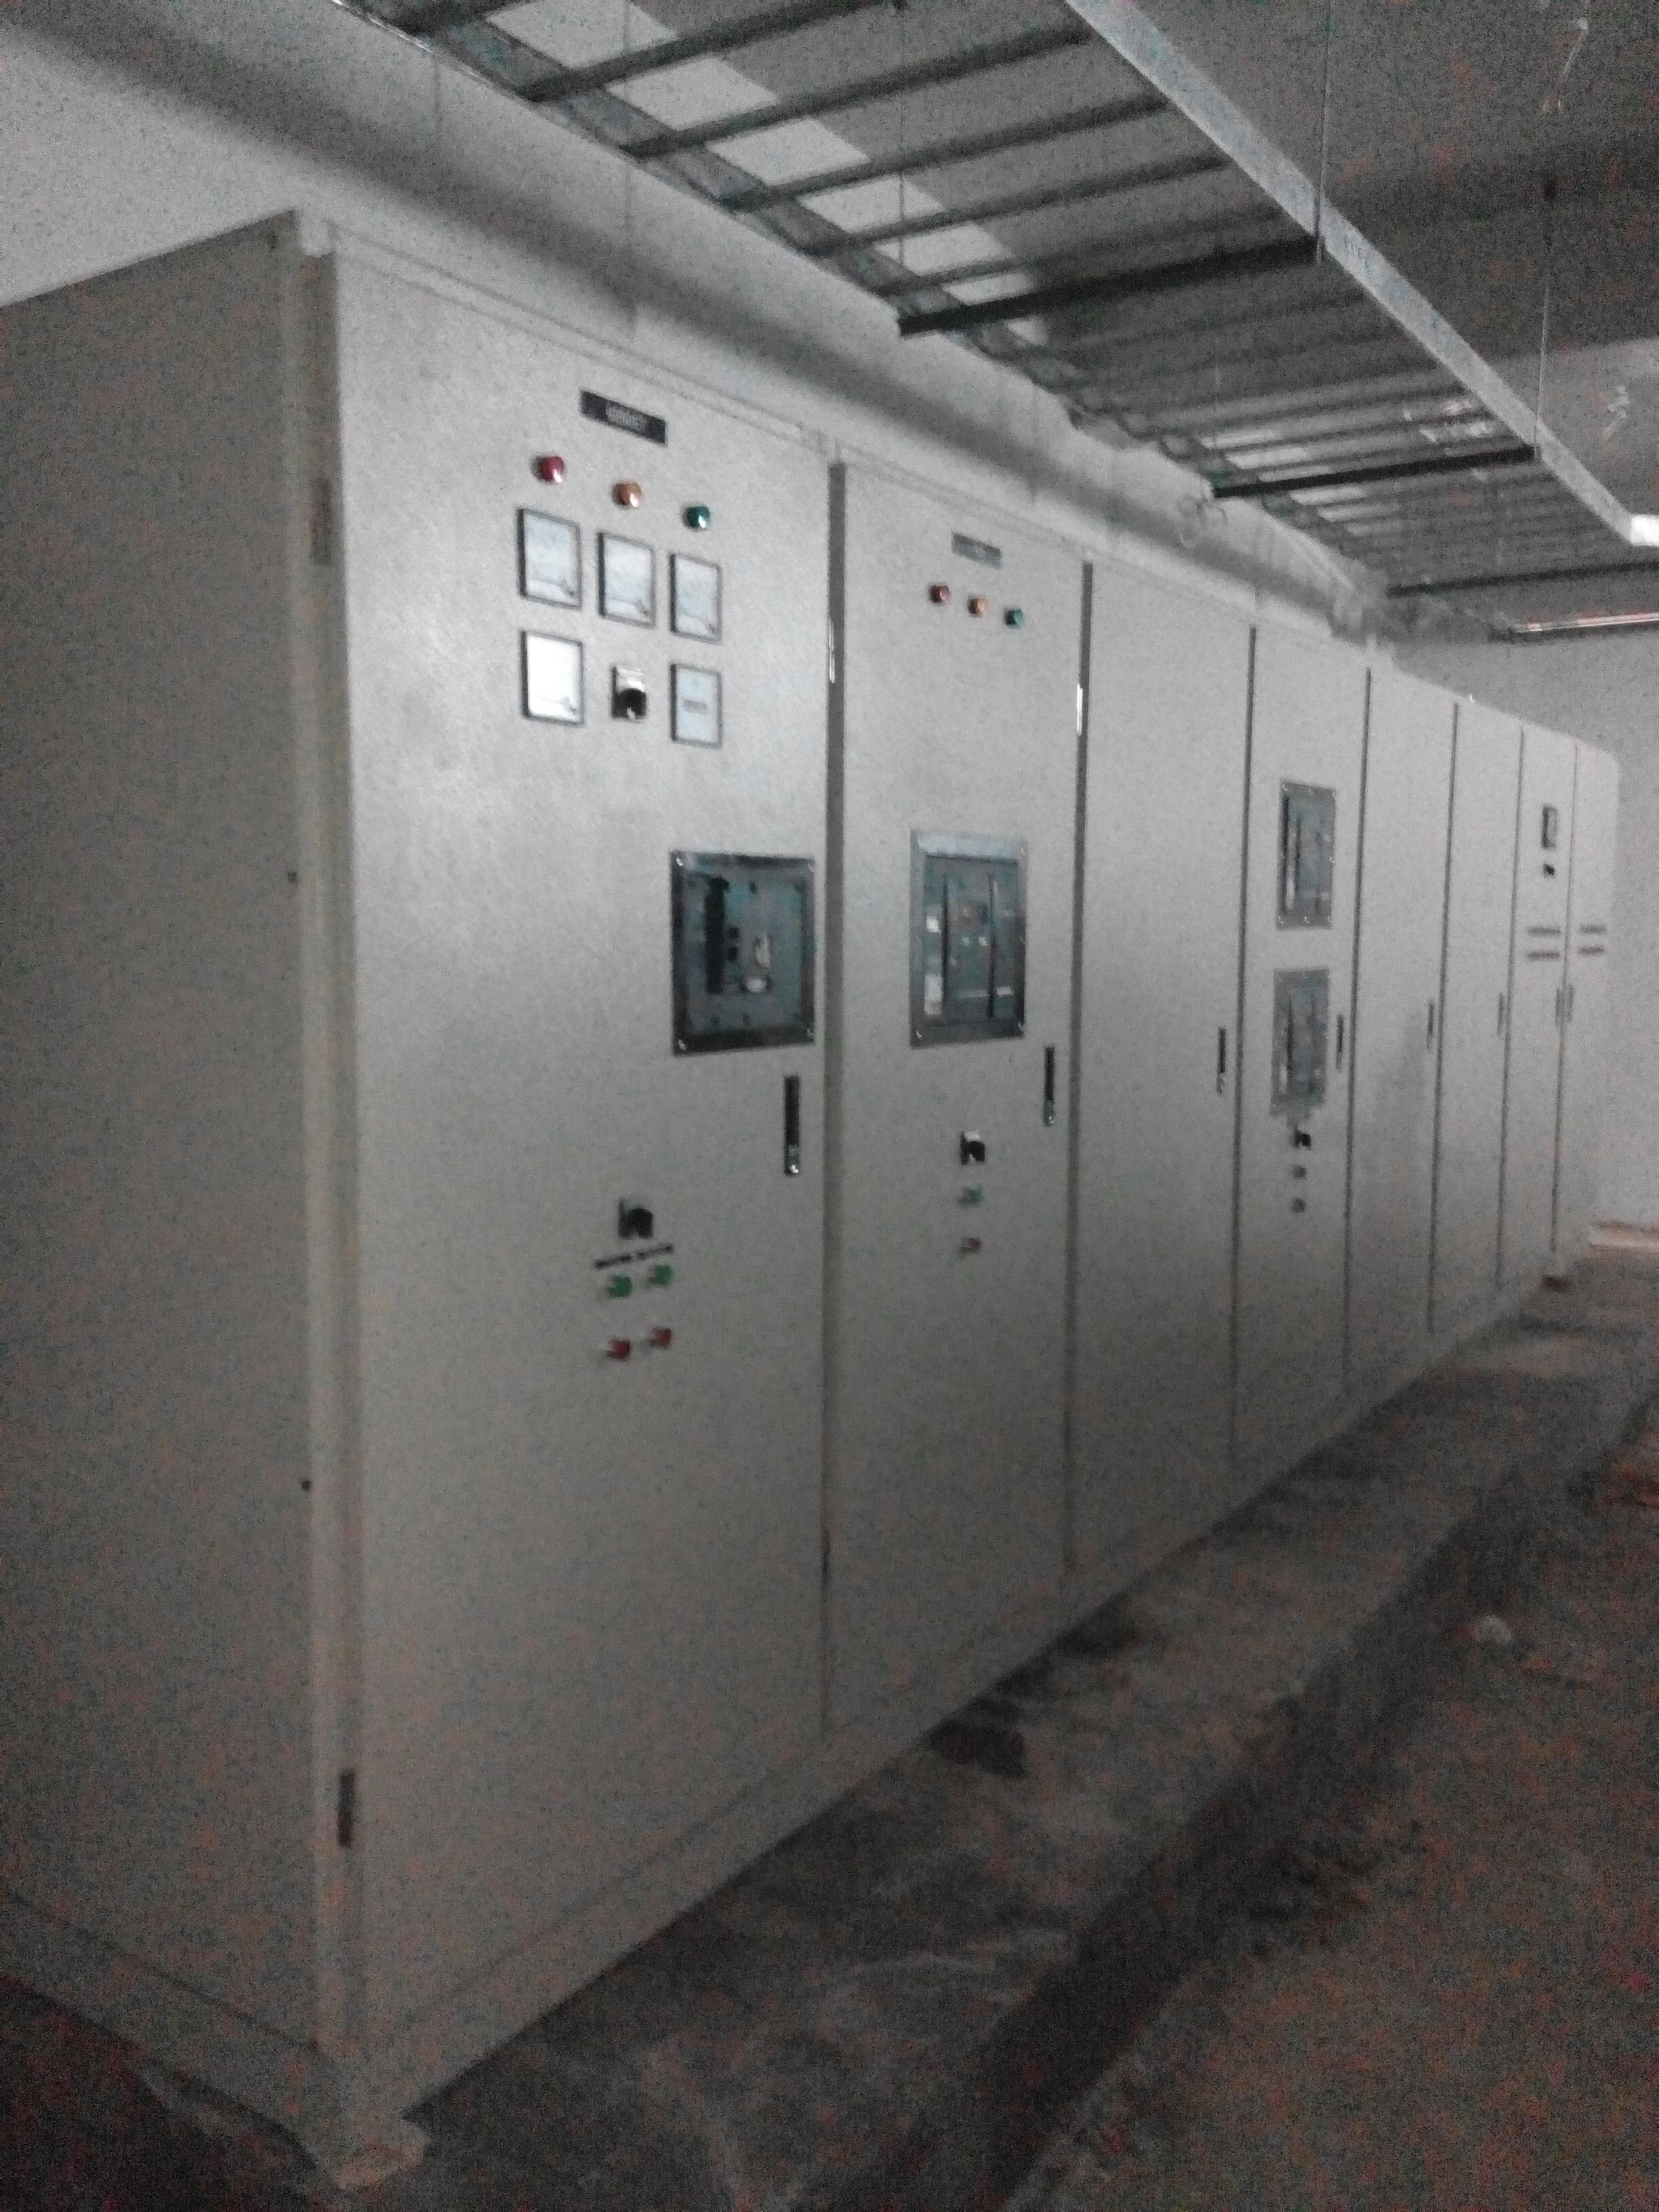 Electrical panels distributor in surabaya supplier dealer sell panel lvmdp cheapraybanclubmaster Gallery